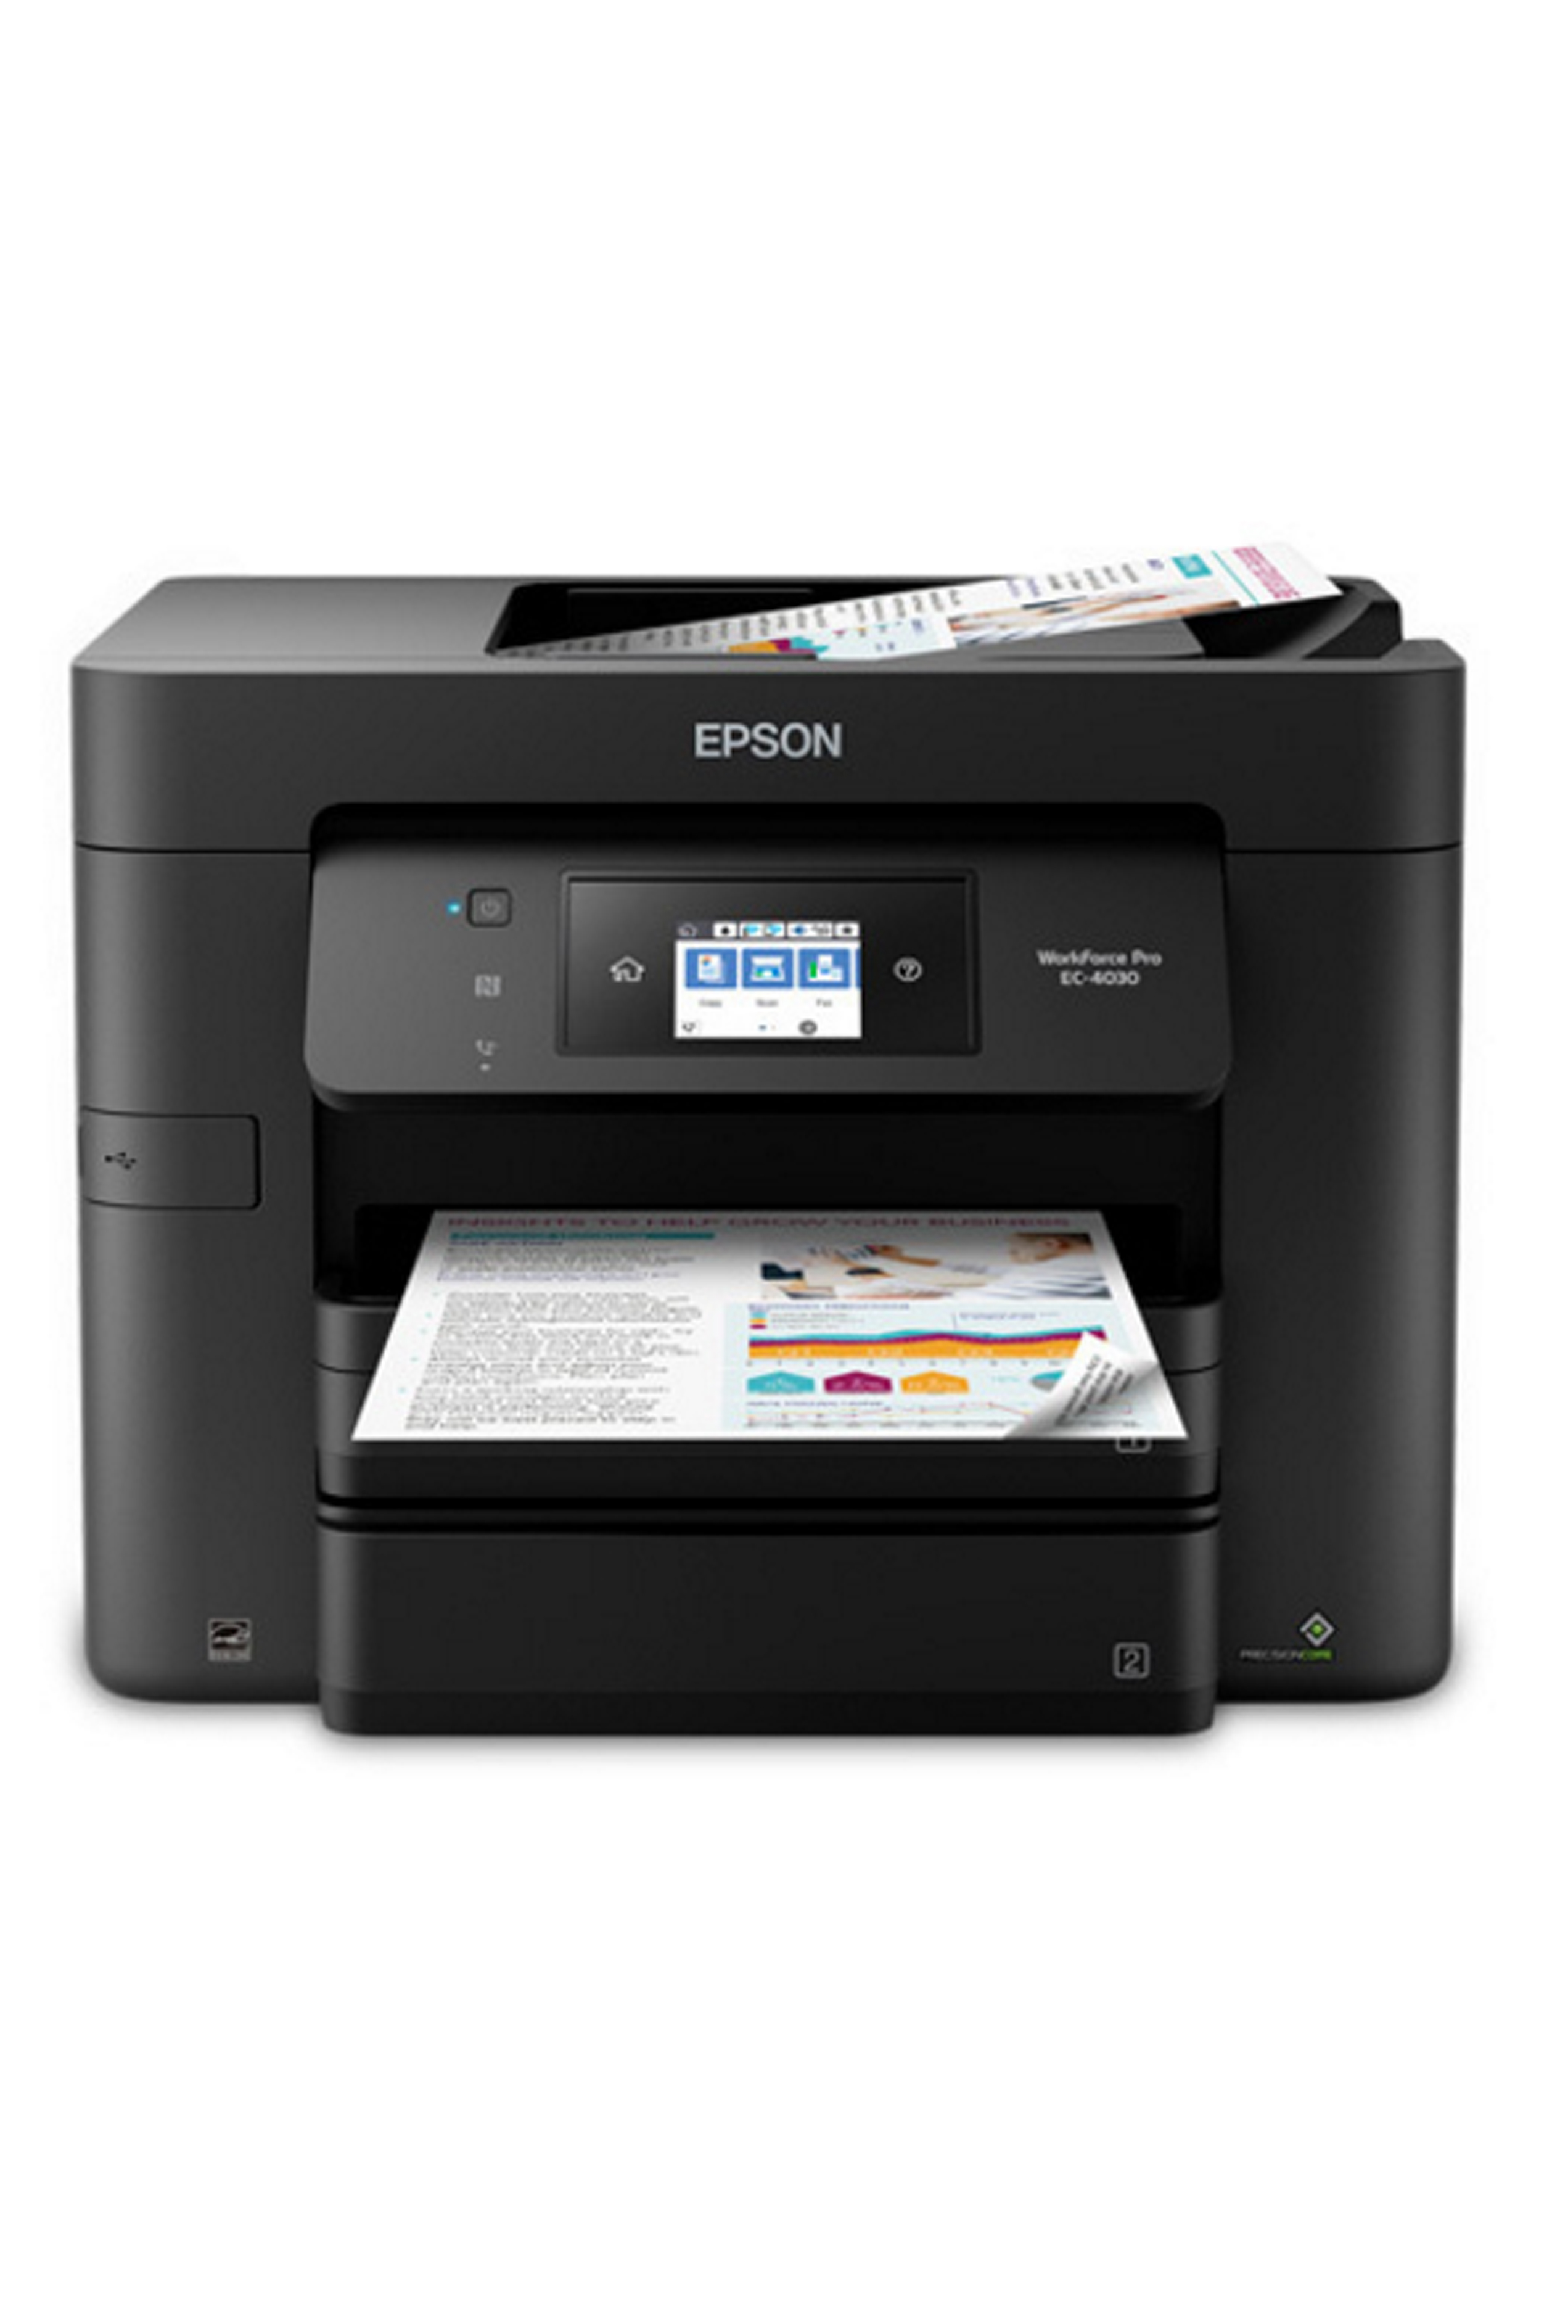 Epson EPSON WORKFORCE PRO EC-4030 COLOR INKJET MFP (20PPM)